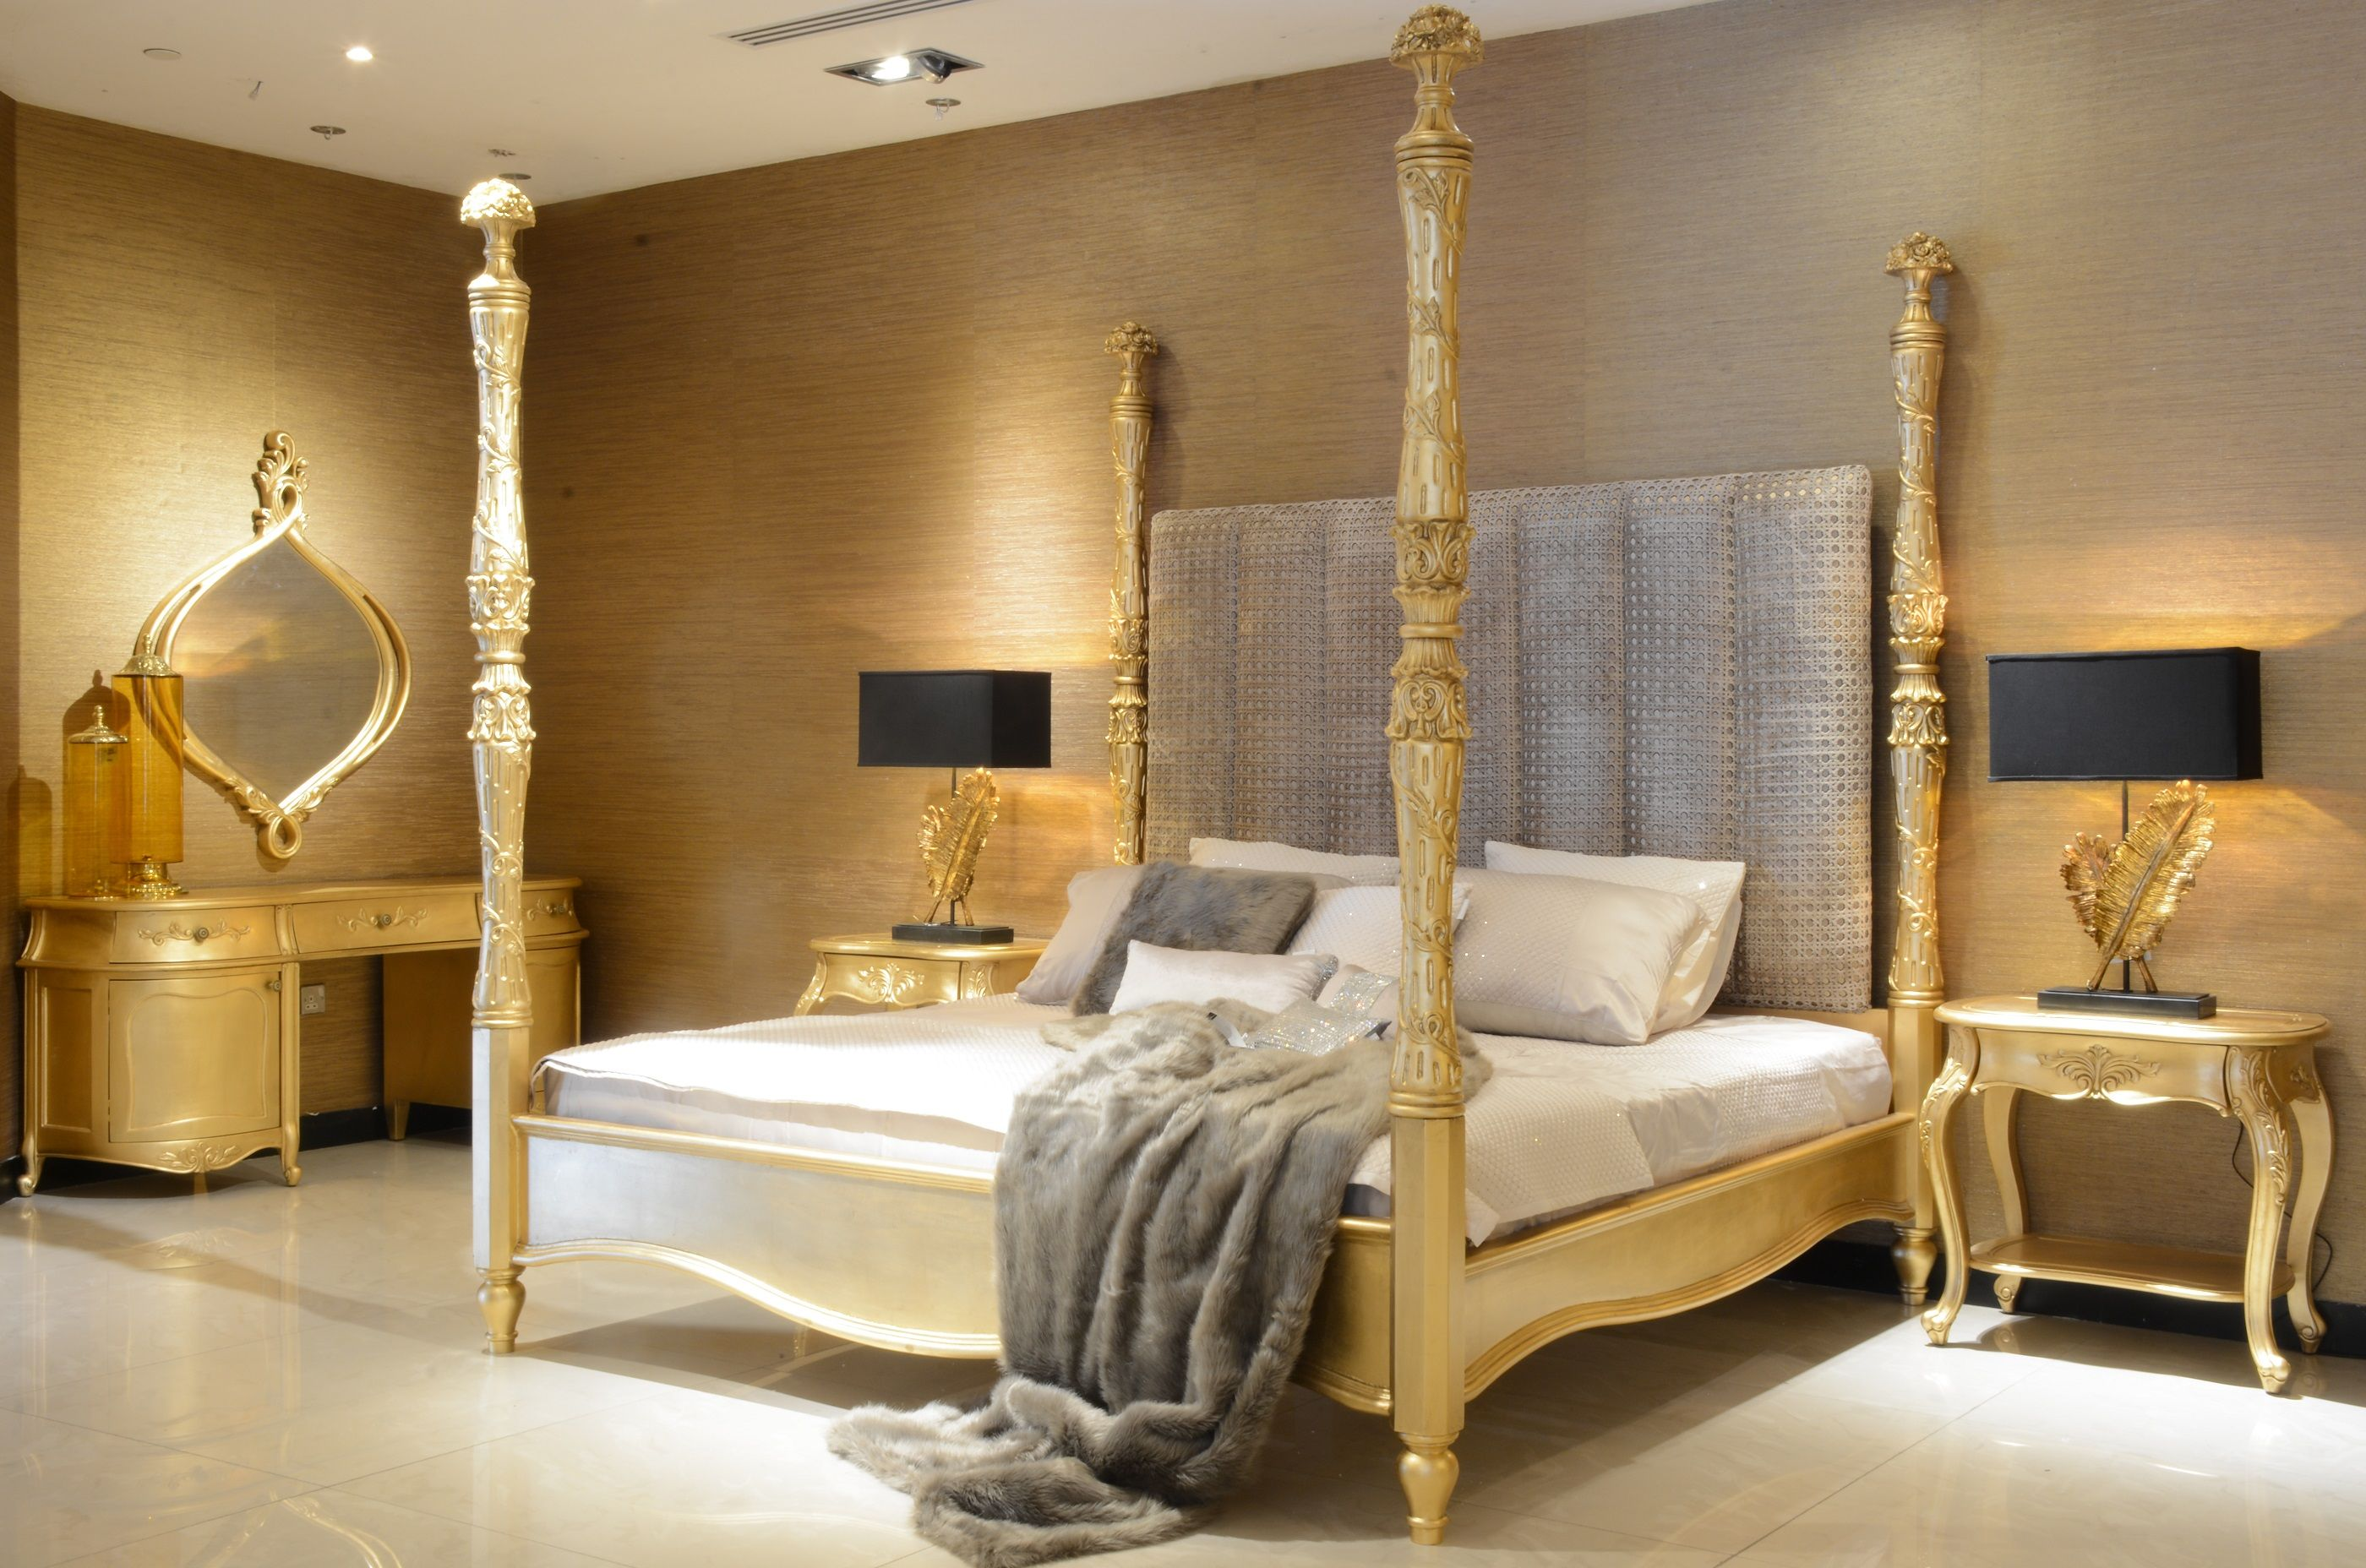 Luxury At Its Best At Al Huzaifa Furniture #Alhuzaifa #Alhuzaifauae